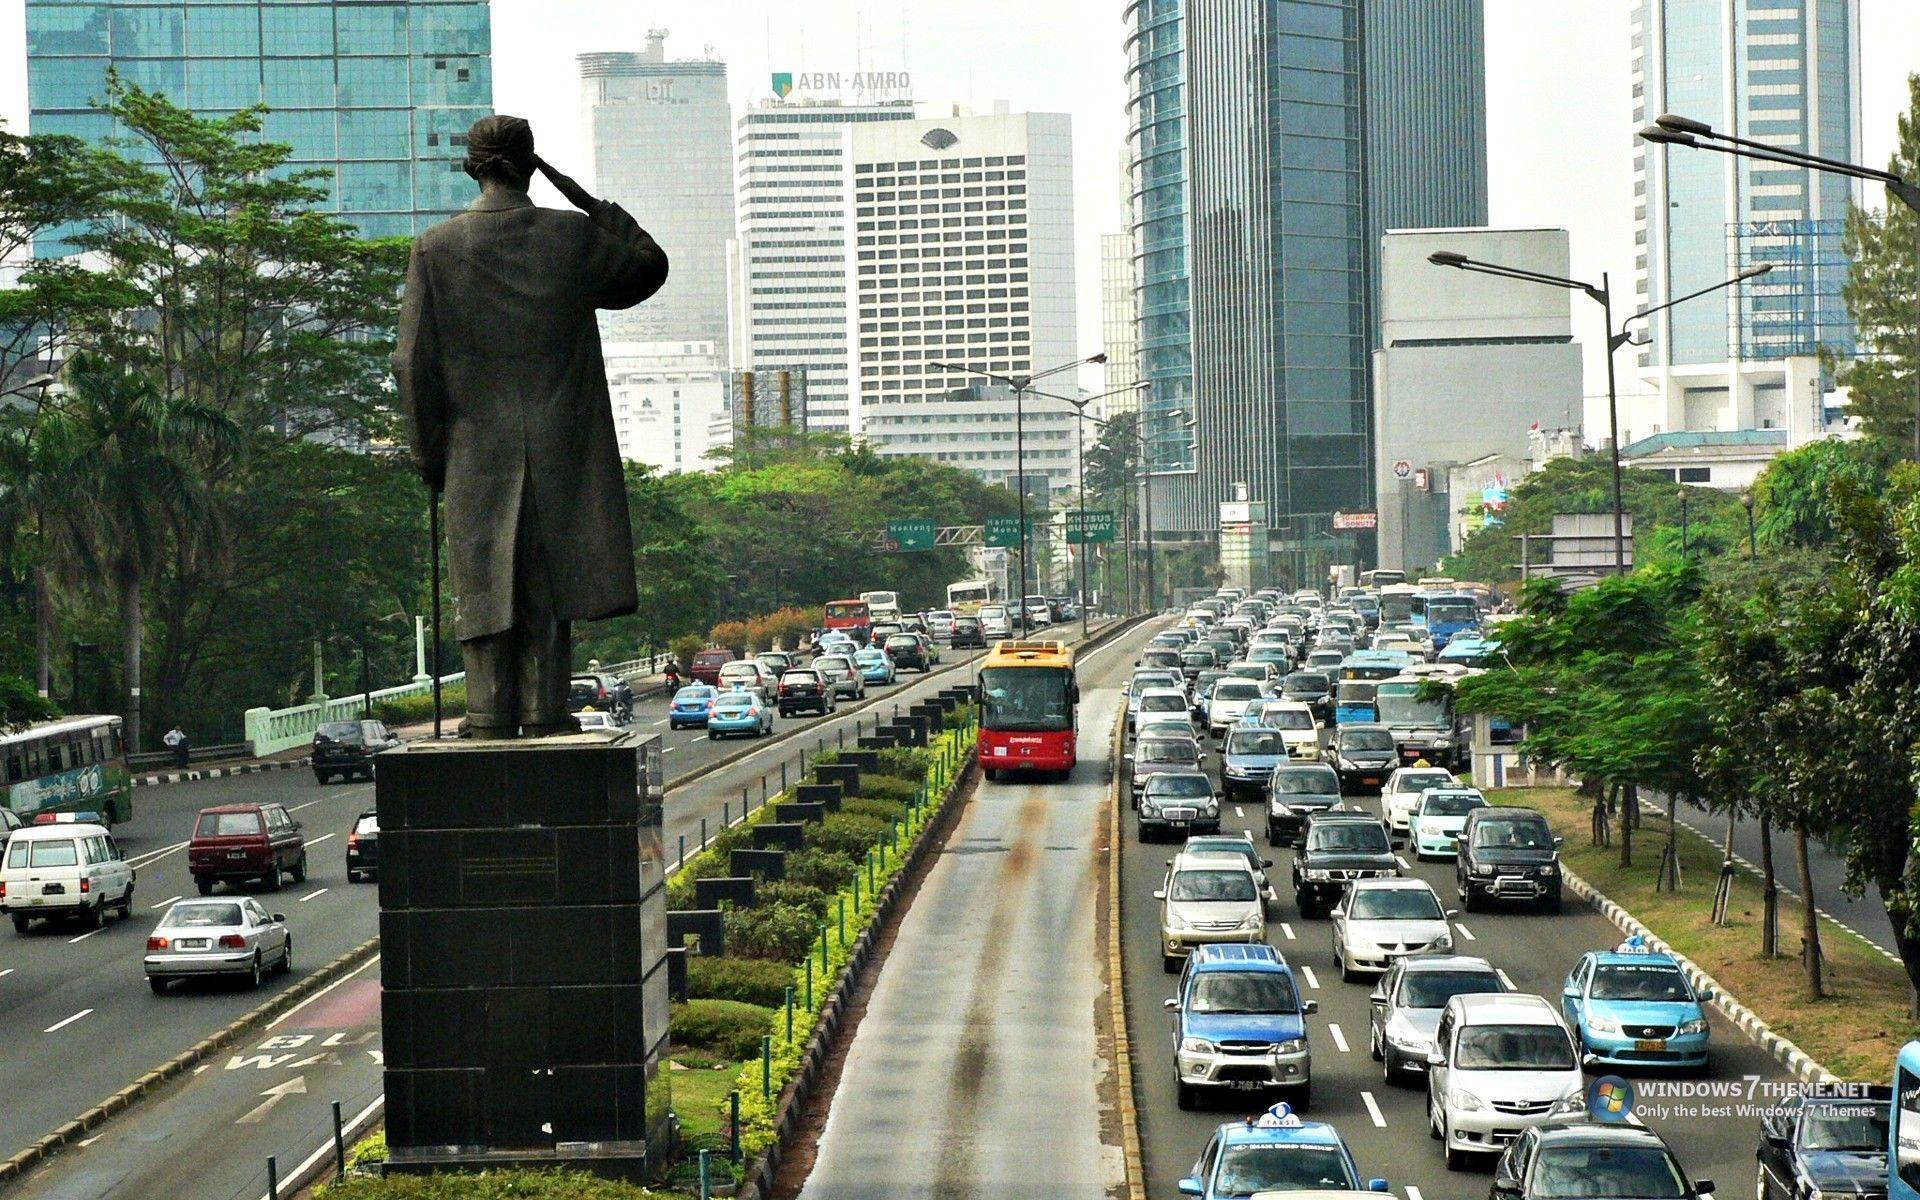 Jakarta City wallpapers and images - wallpapers, pictures, photos